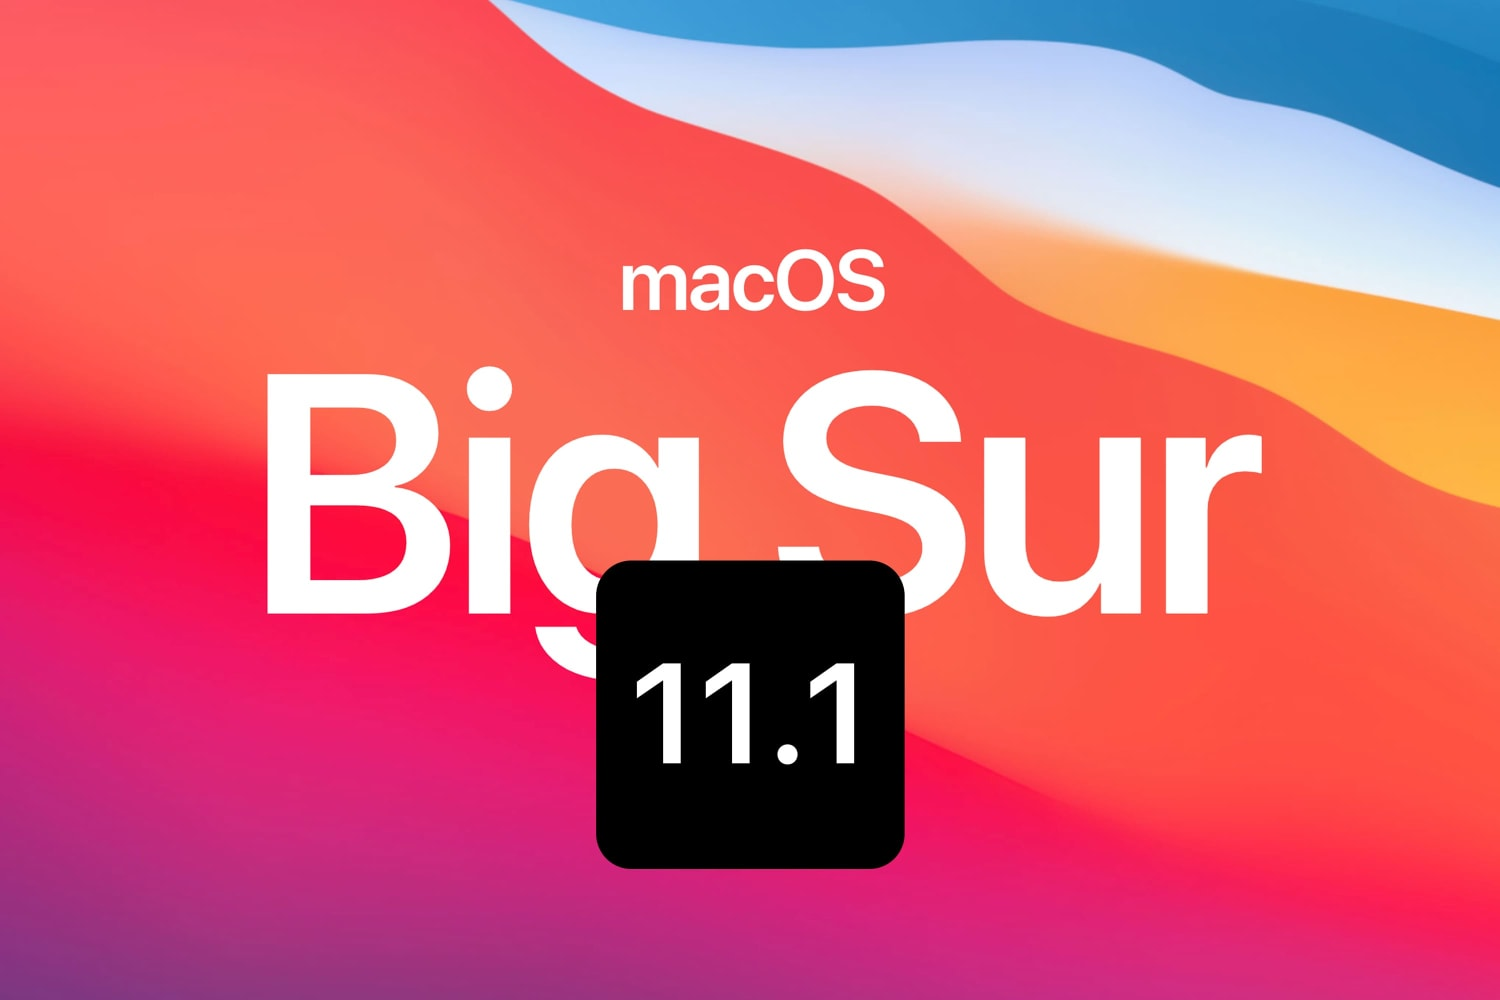 macos-11-1-big-sur-first-developer-beta-now-available-20201117-1